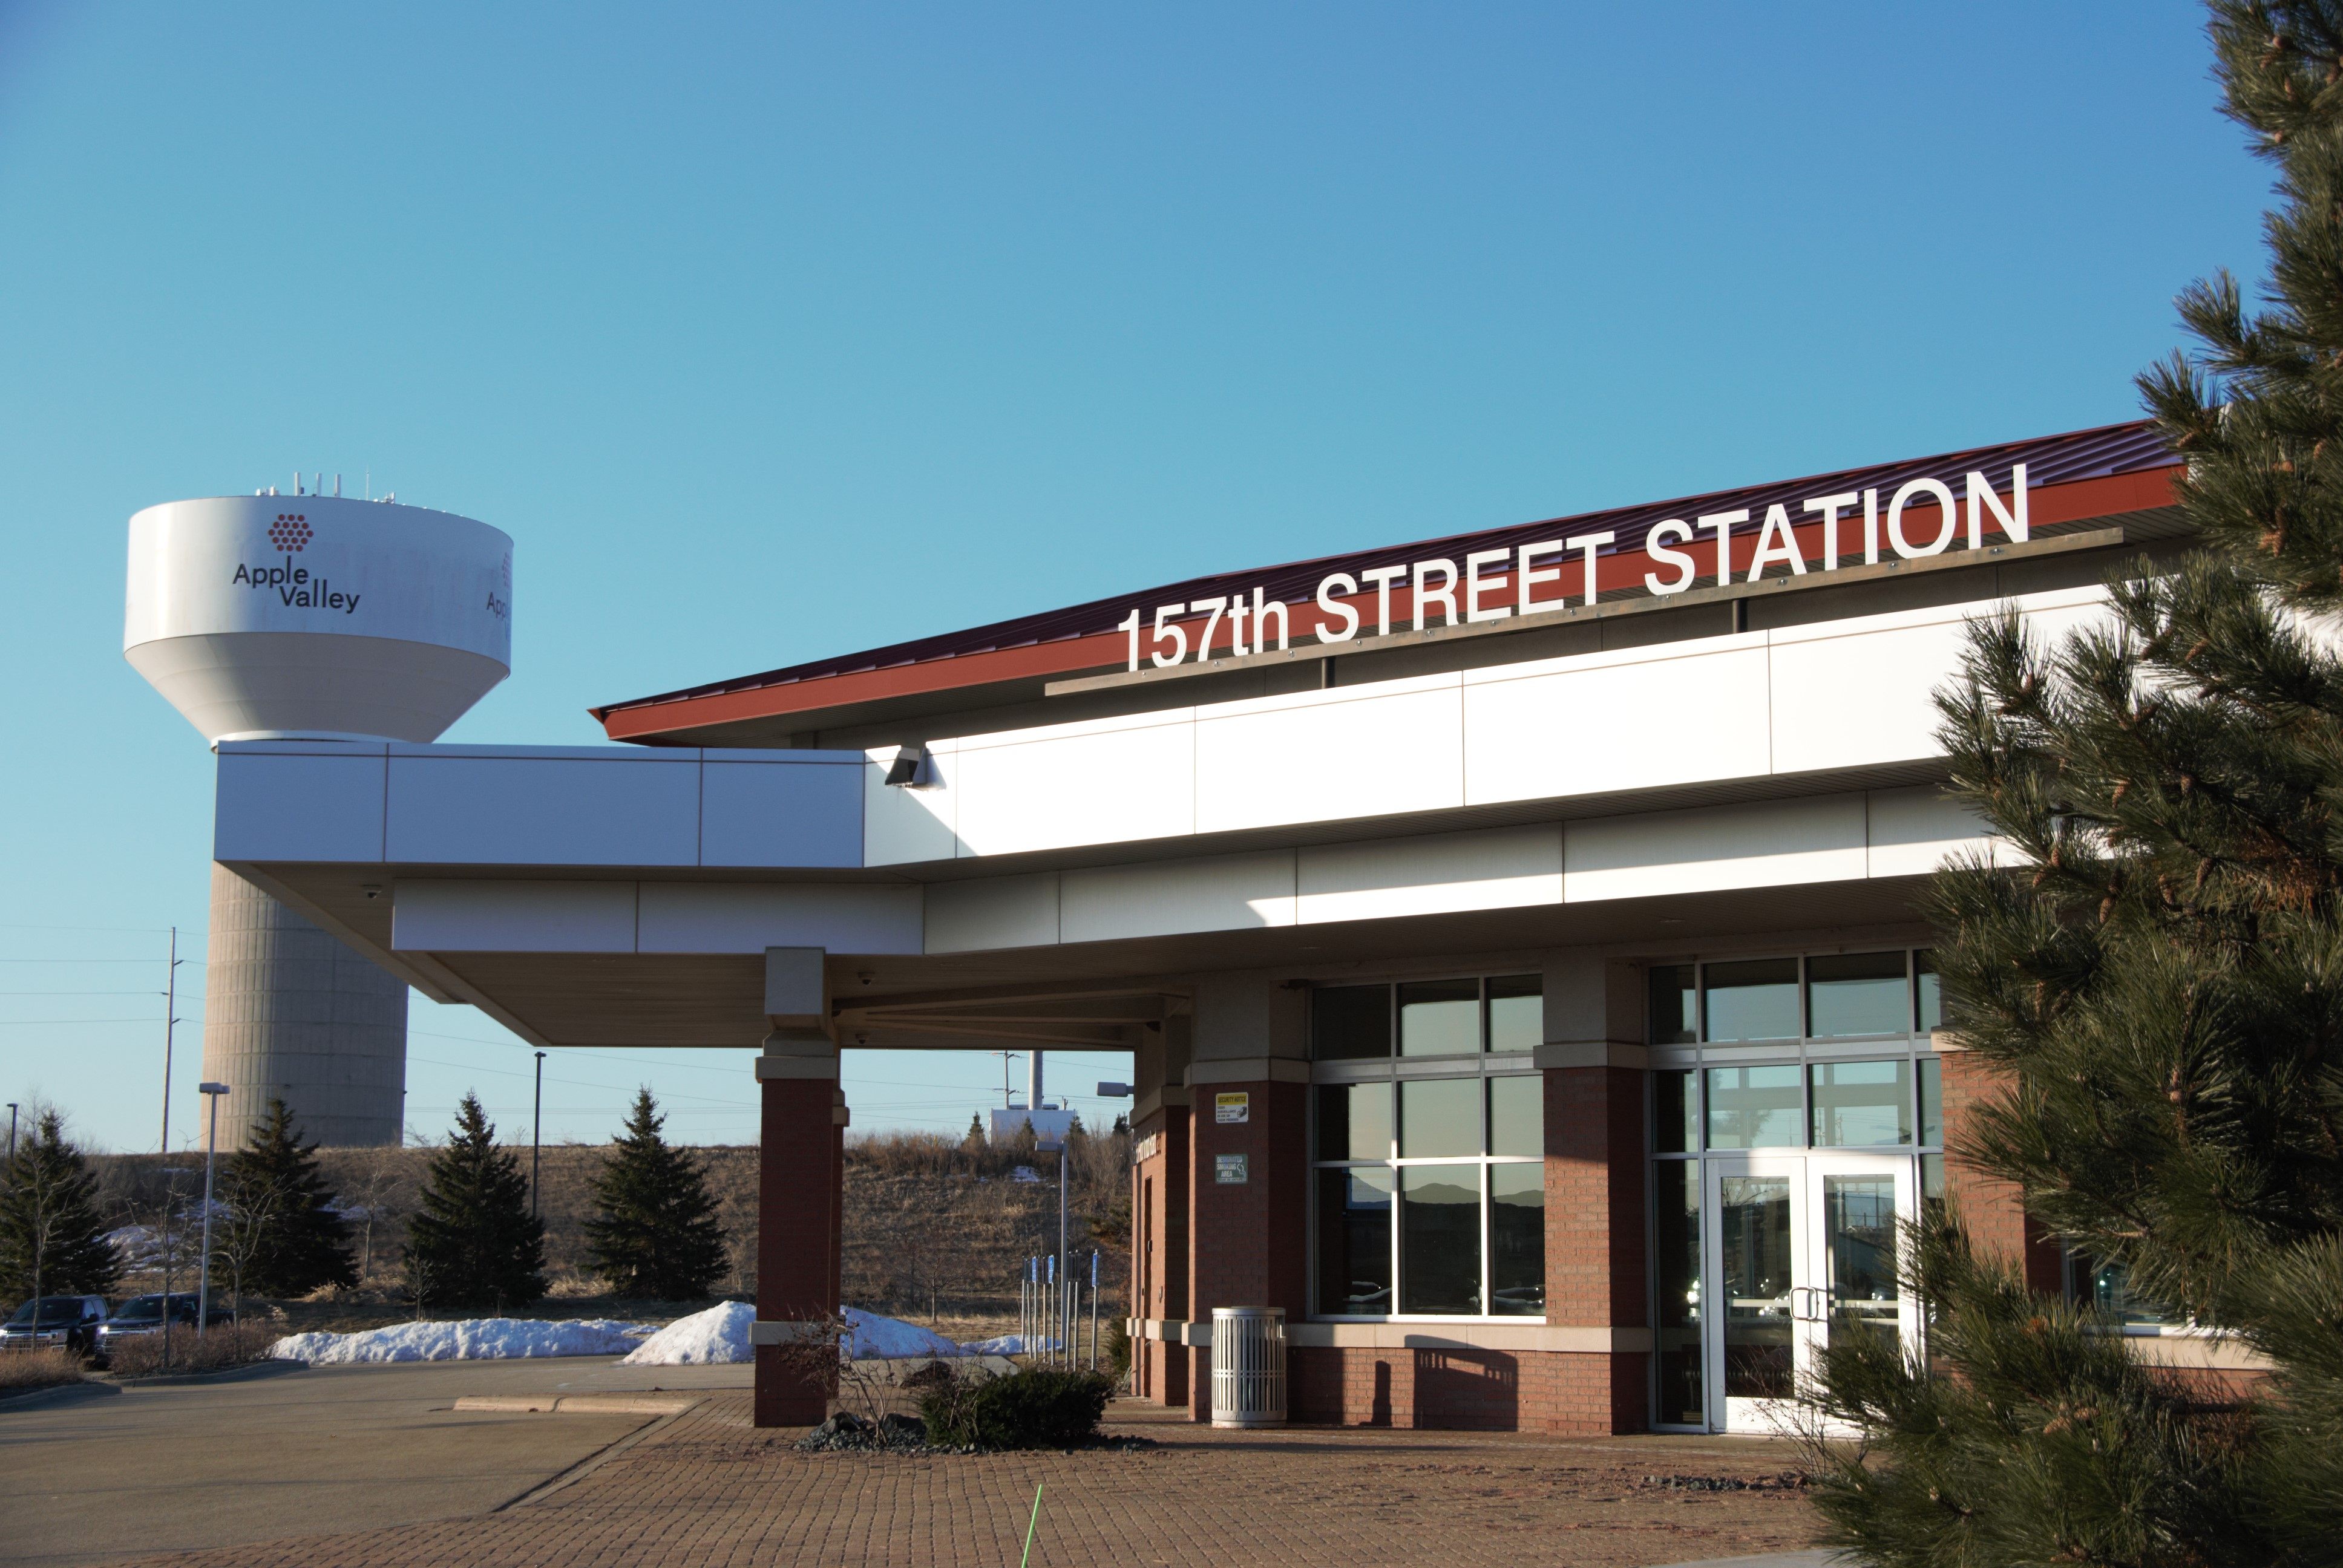 15th Street Station is located at the intersection of County Road 46 and Pilot Knob Road in Apple Valley, MN